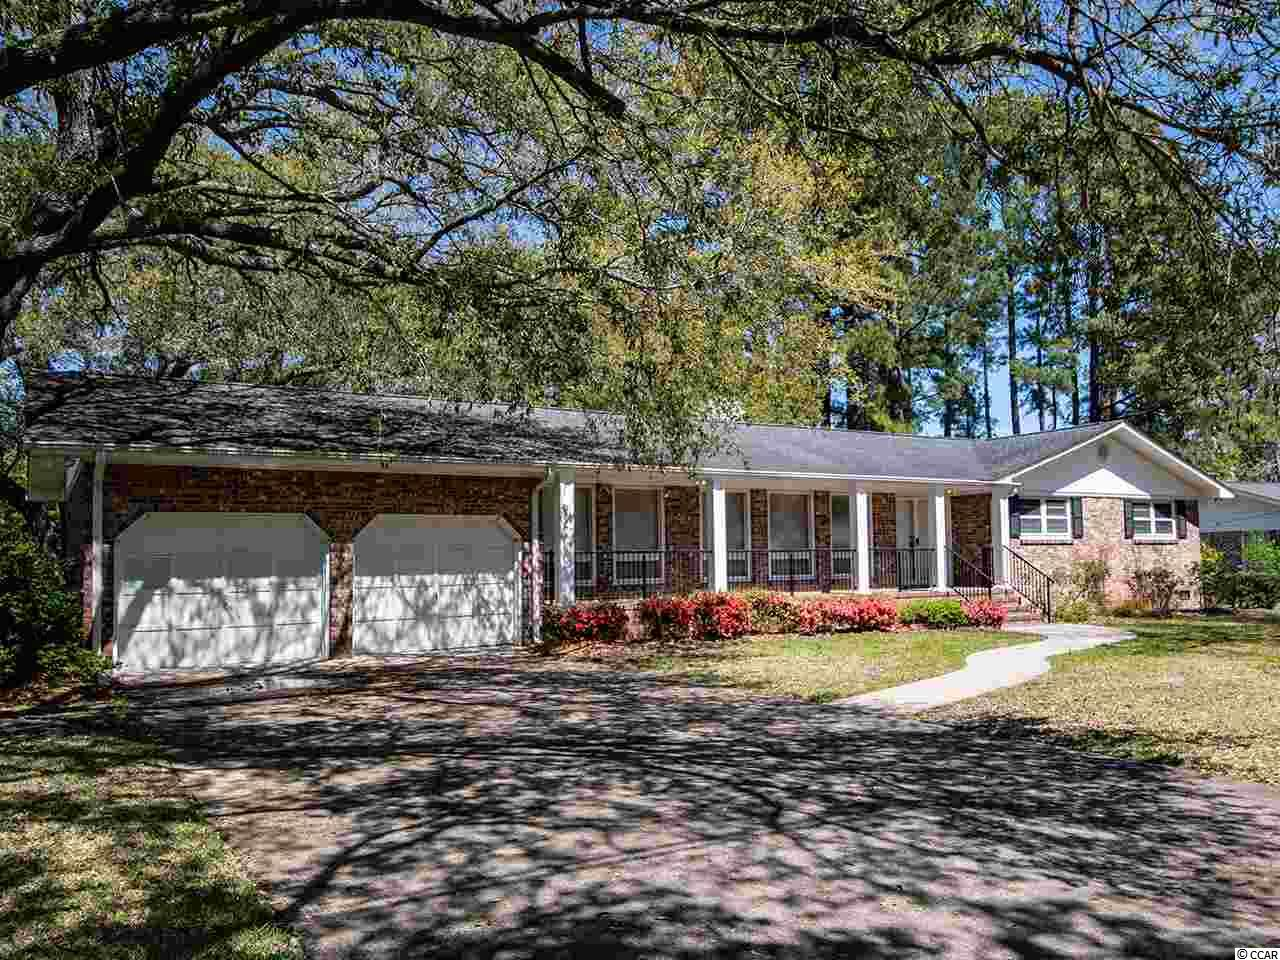 Location, location, location...Country Club Estates:  Only minutes from the Historic District of Georgetown, SC, water front dining, shopping, area beaches and several water ways. This 4 bedroom 2-1/2 bath ranch has the perfect location to be within reach of everything yet still enjoy a quiet neighborhood.